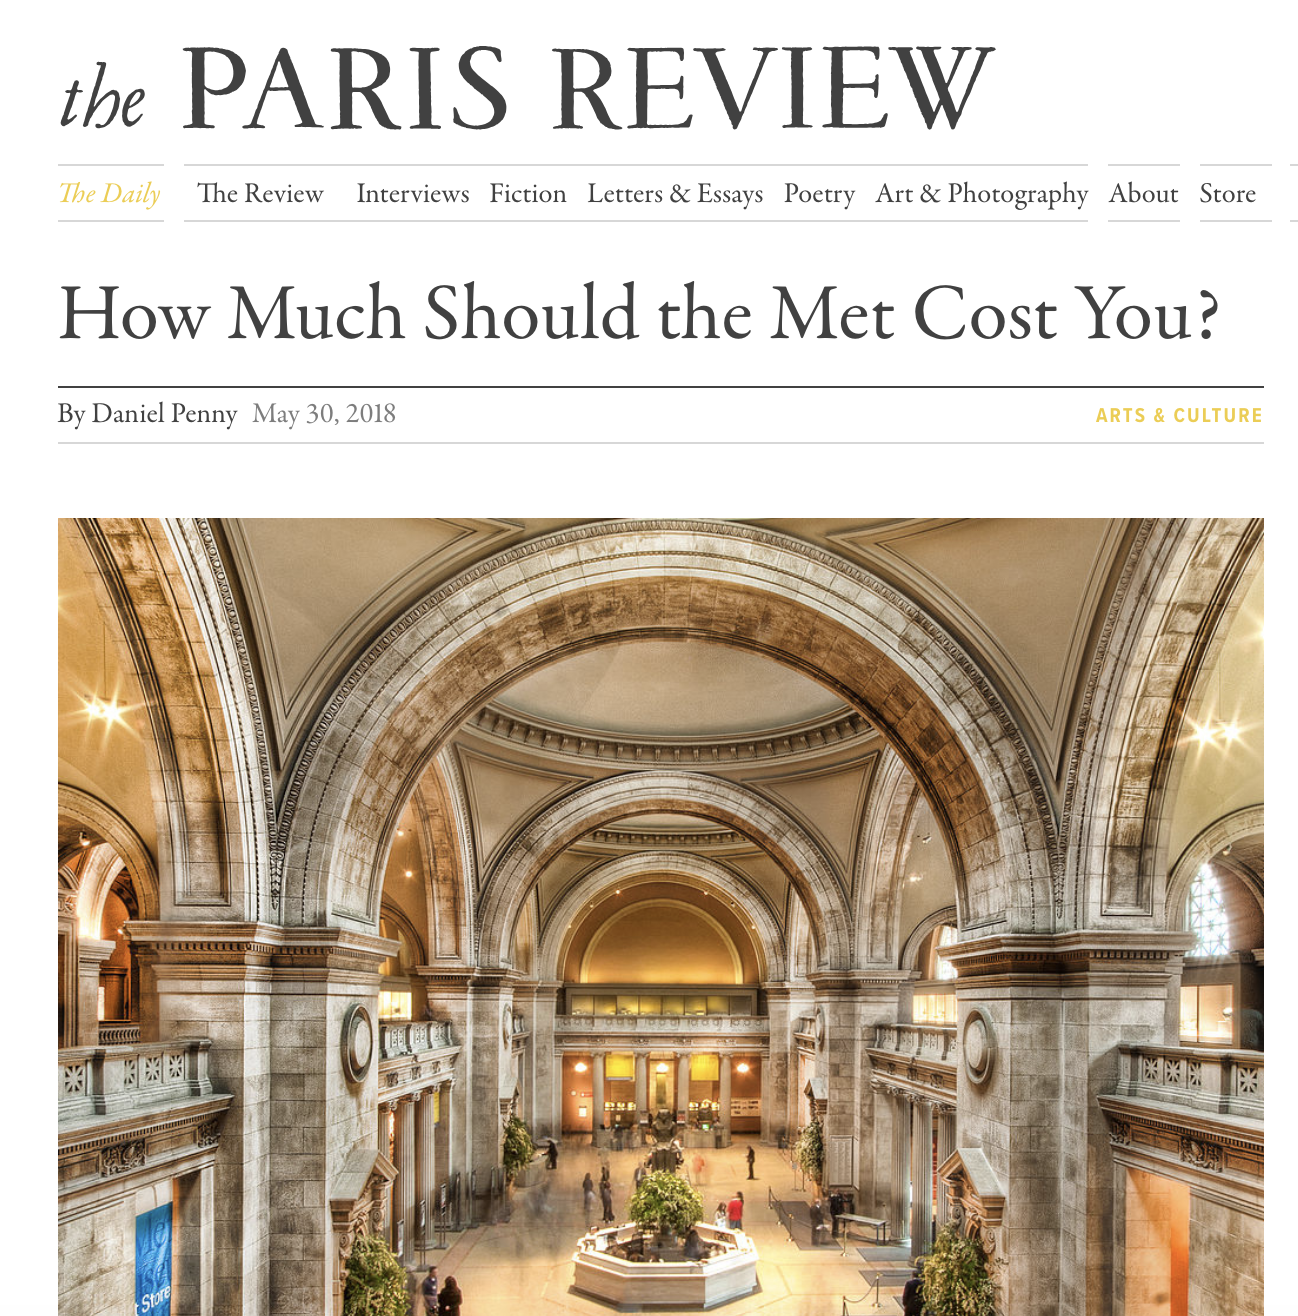 The Paris Review, May 2018 - Daniel Penny covers Equitable Met and Look at Art. Get Paid. in How Much Should the Met Cost You?